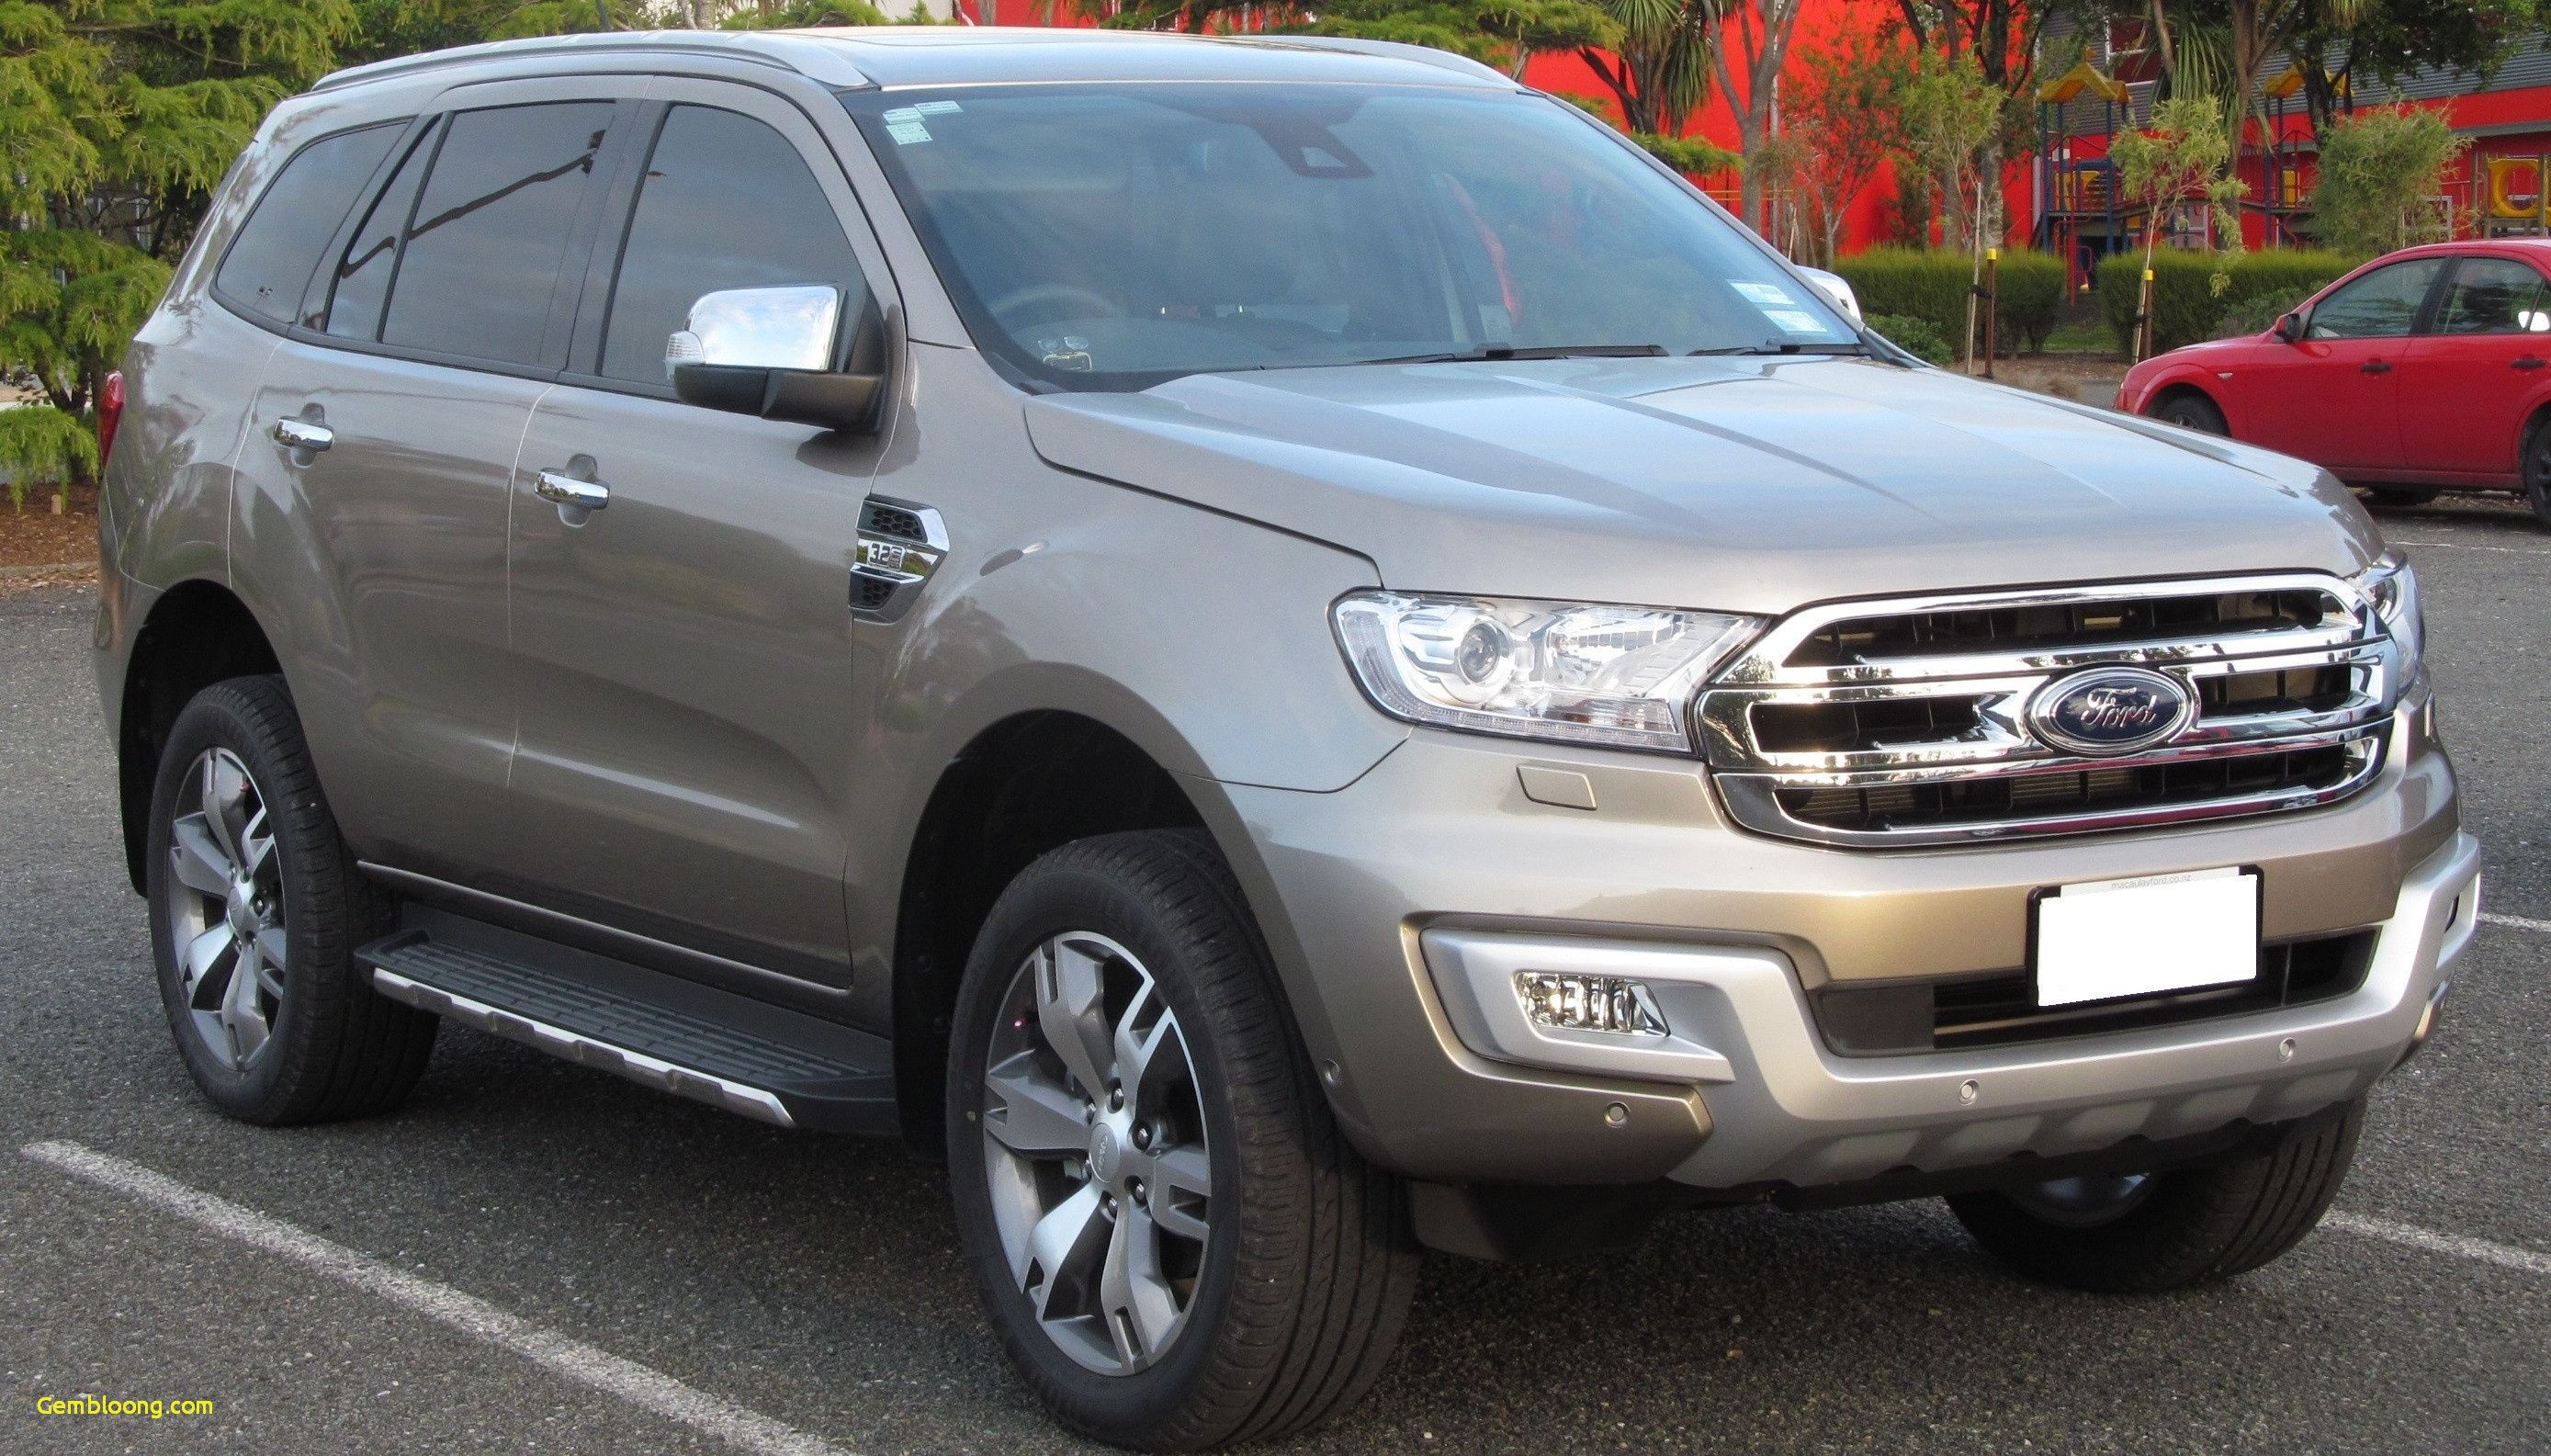 Ford Everest 2018 Specs Ford Everest 2018 Specs 2017 Ford Everest Fuel Economy Ford Toyota Wish